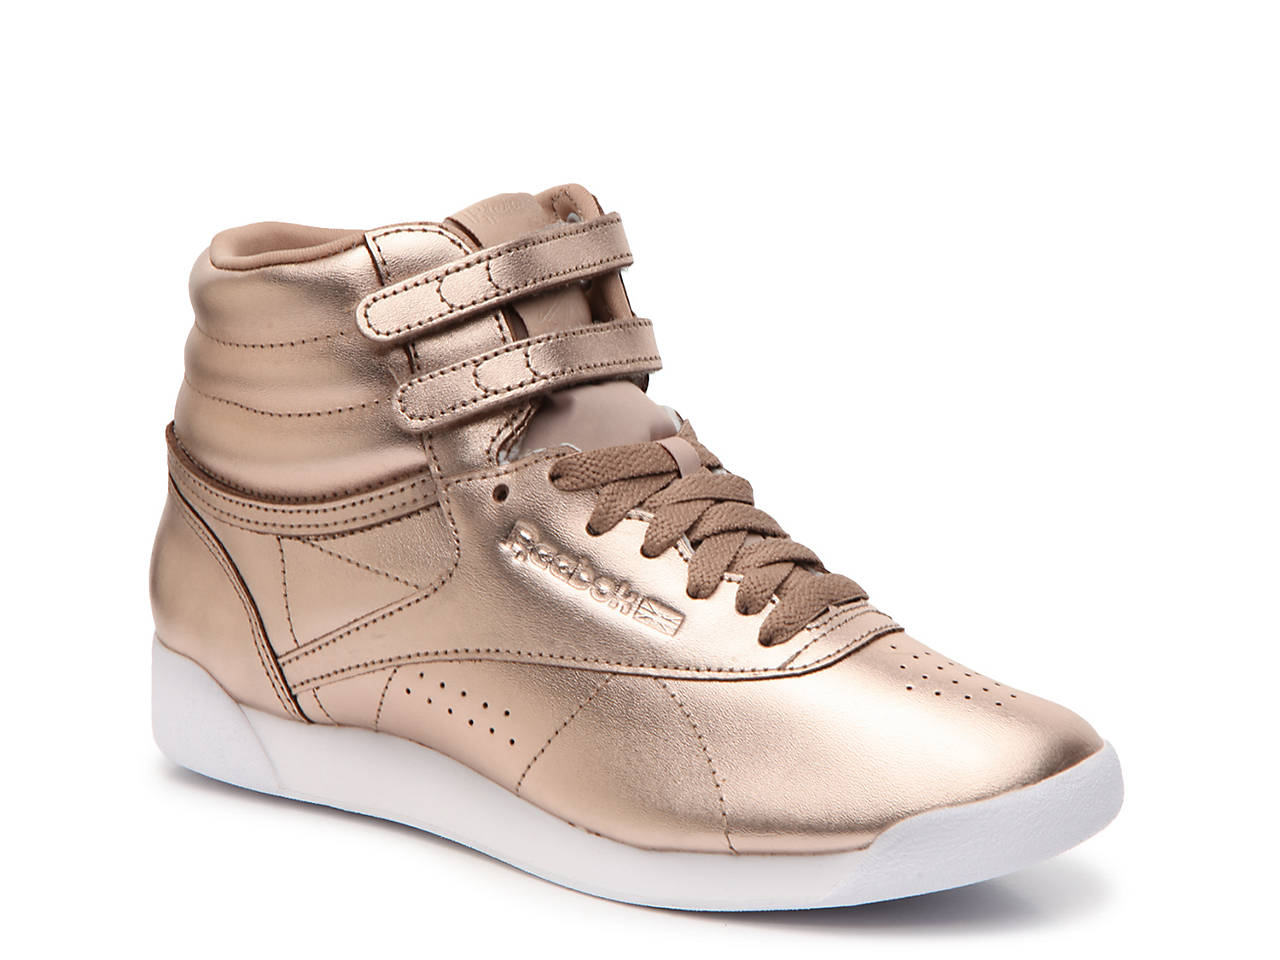 Reebok Hi Metallic High-Top Sneaker - Women s Women s Shoes  39a5a1232